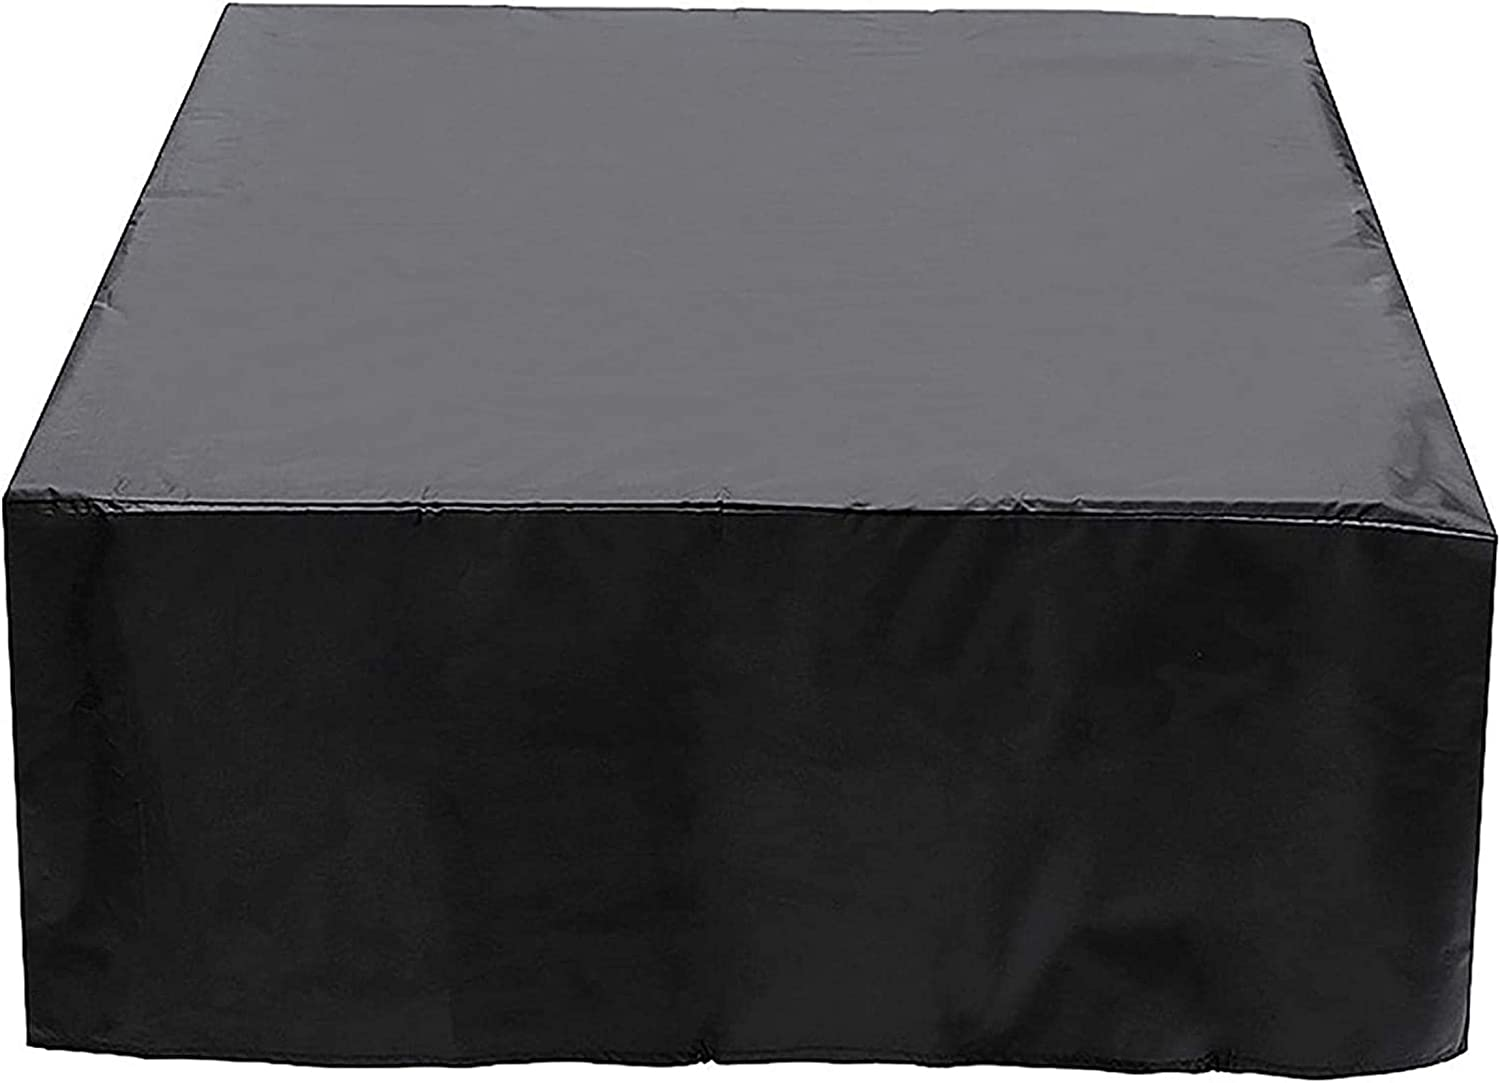 WHCQ Garden Furniture gift Branded goods Covers Patio Cover Protective